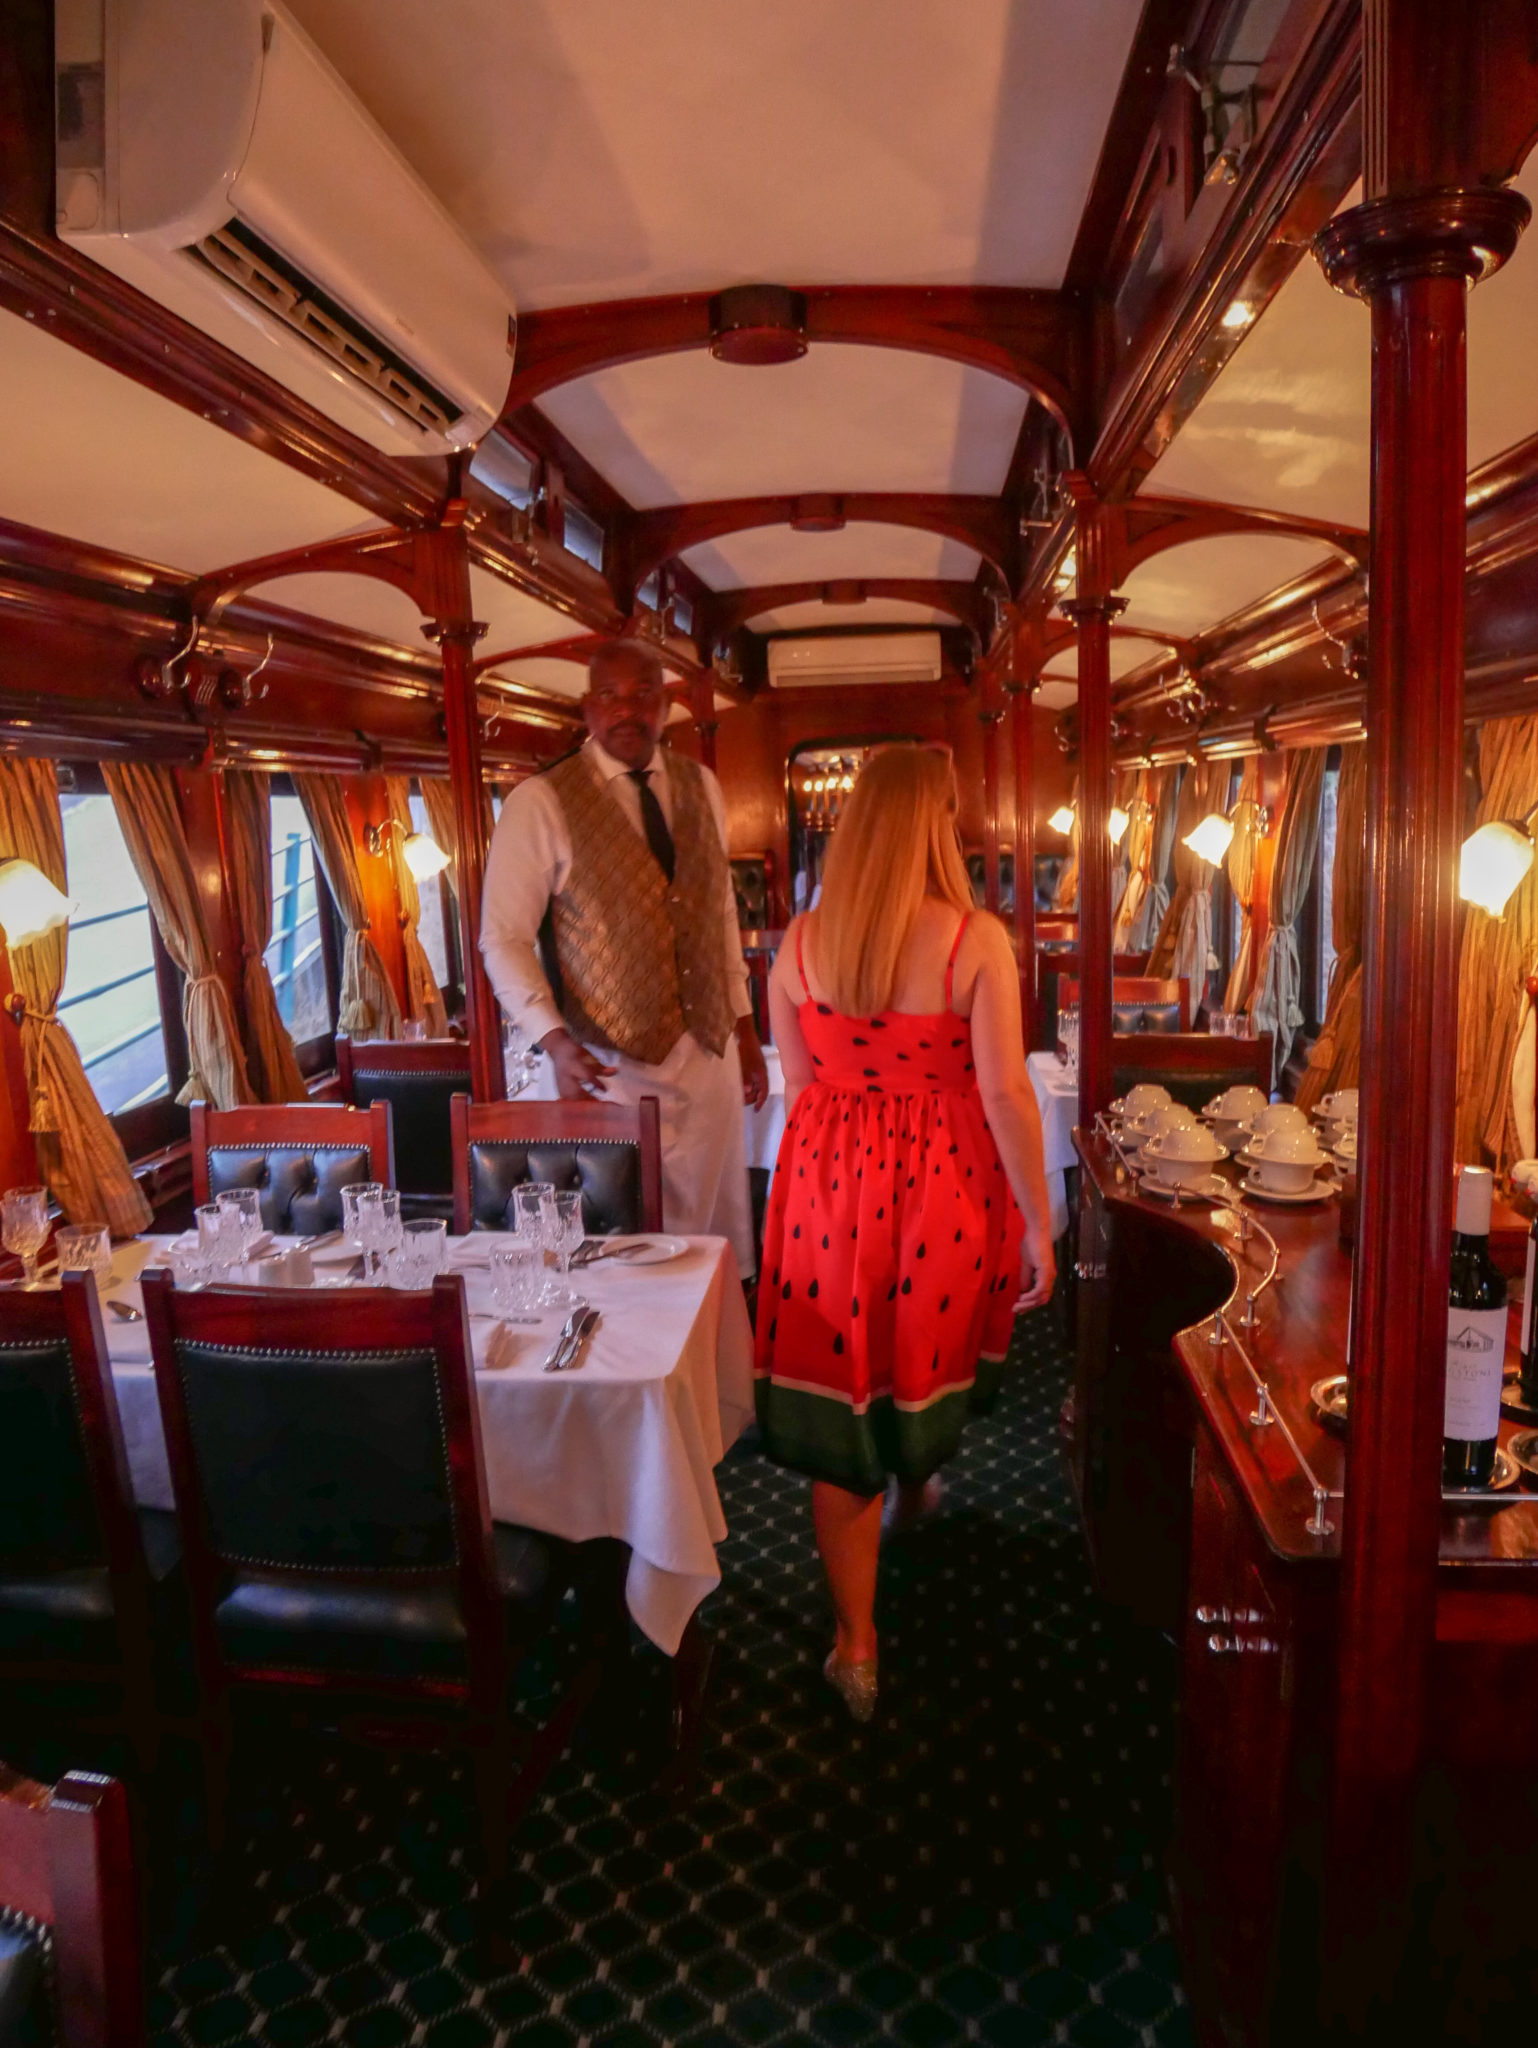 Rosie walks through the Dining Car of the Royal Livingstone Express train